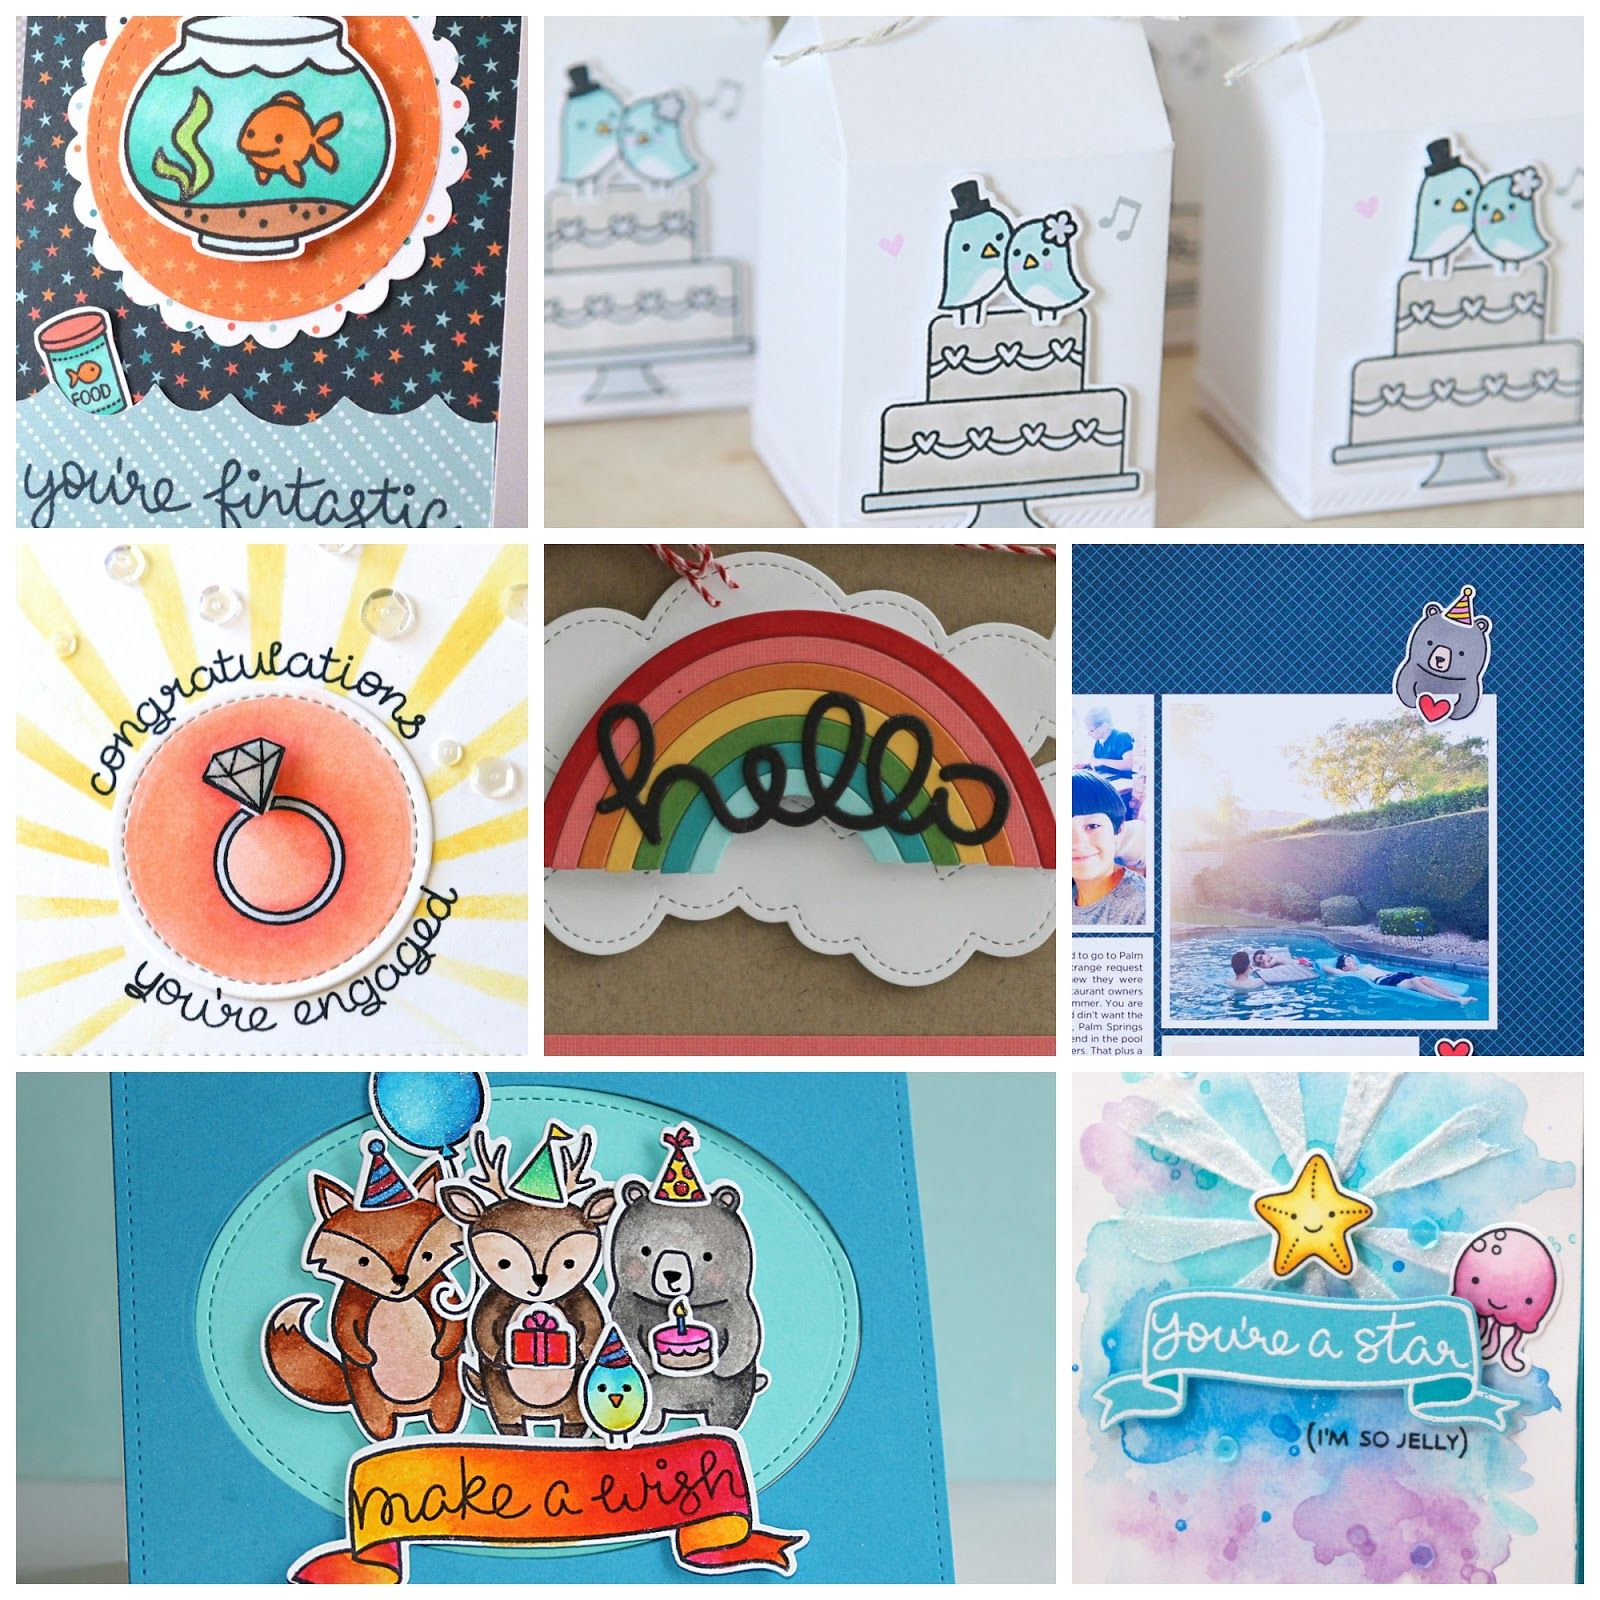 the Lawn Fawn blog: Lawn Fawn Summer 2015 Release Week BIG Giveaway Post